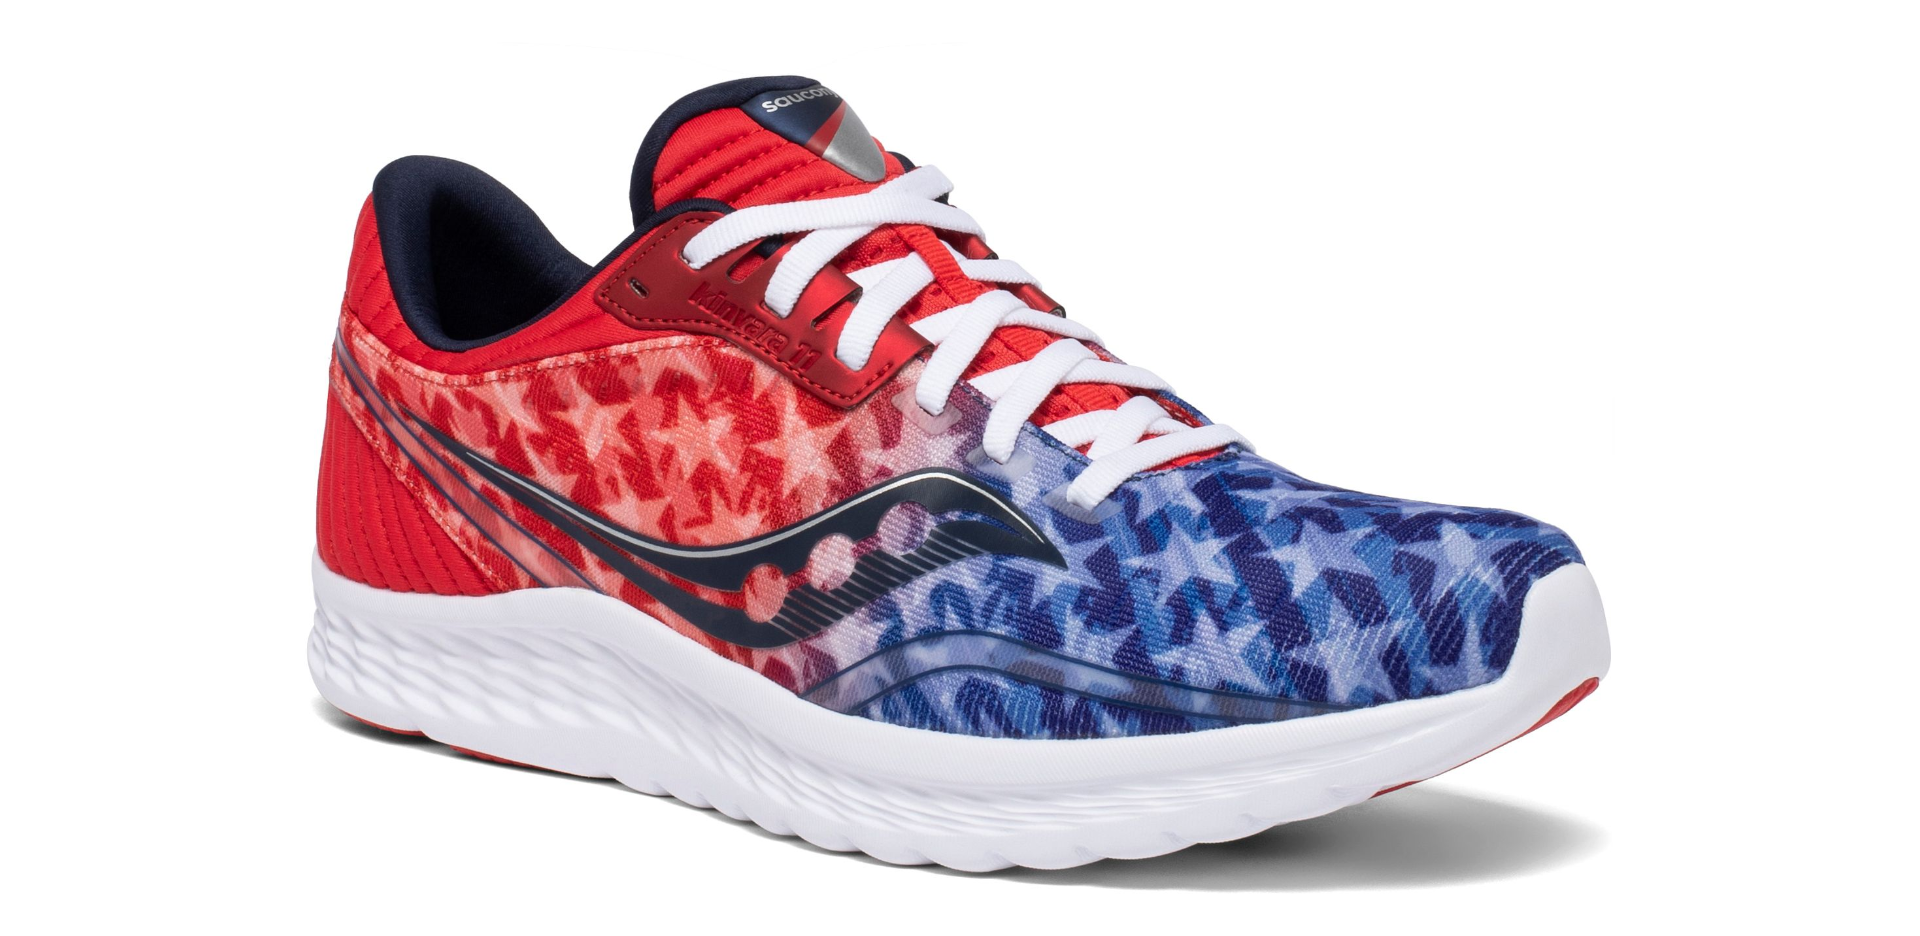 Red and blue shoe with stars overlayed and white laces and sole